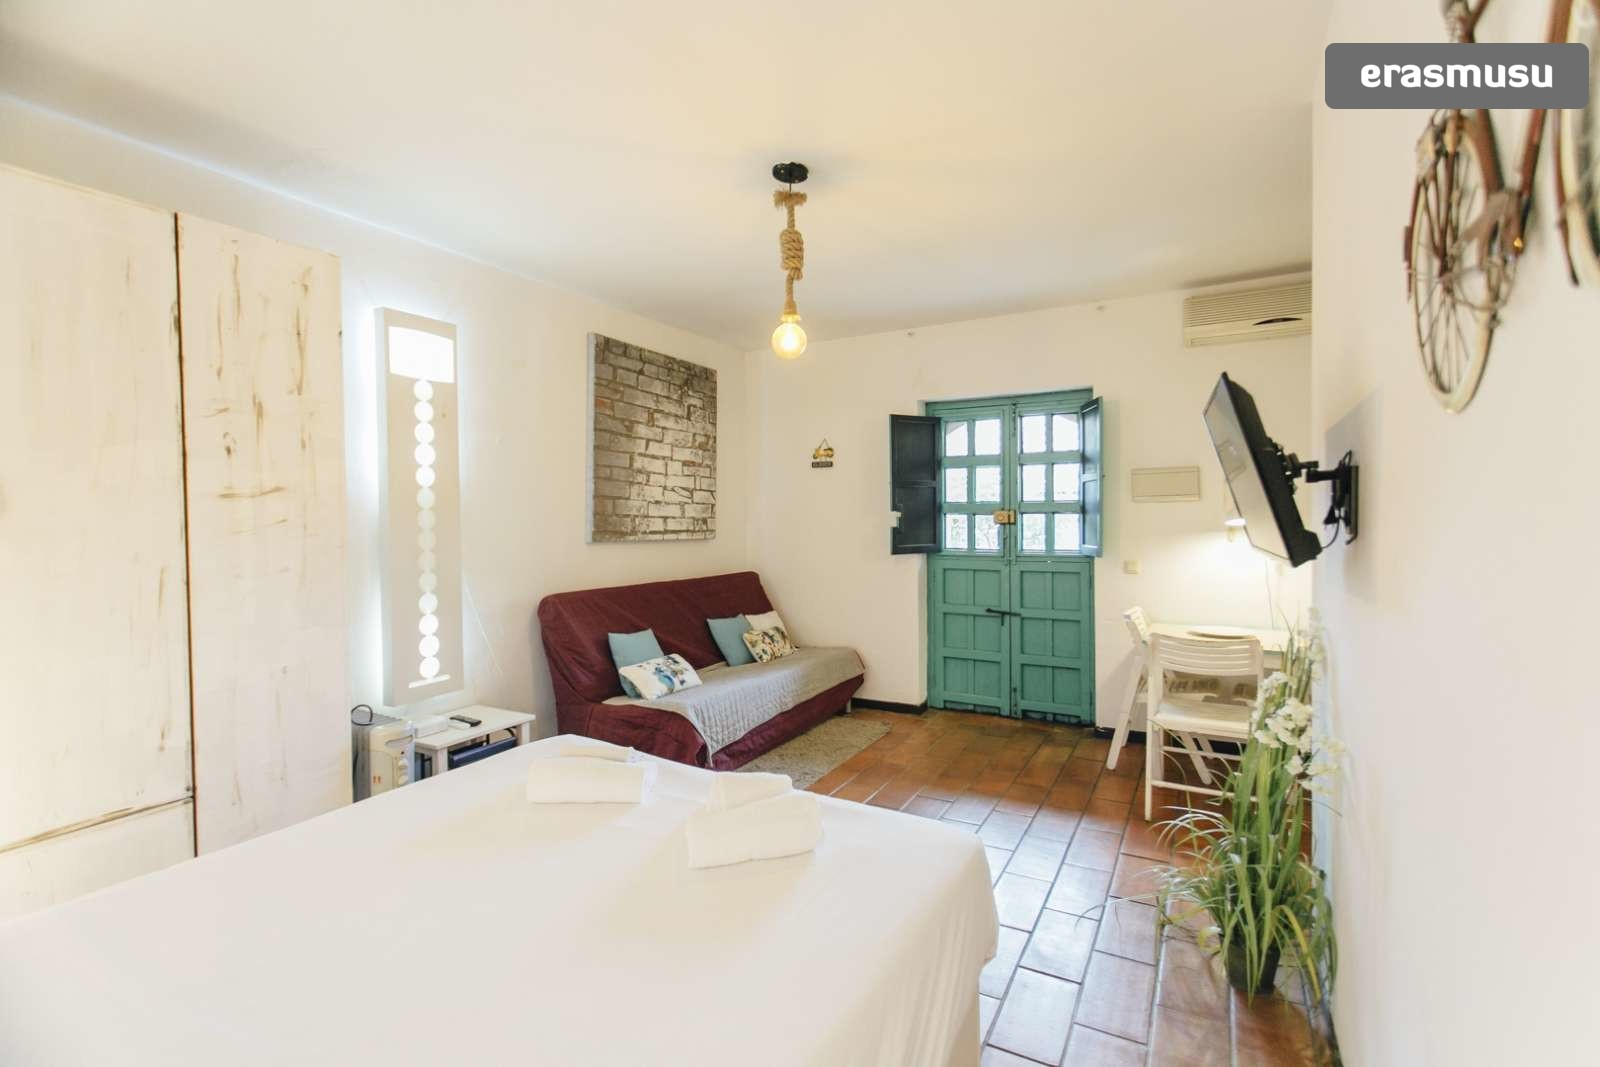 Gorgeous studio apartment with AC for rent in Seville Centro